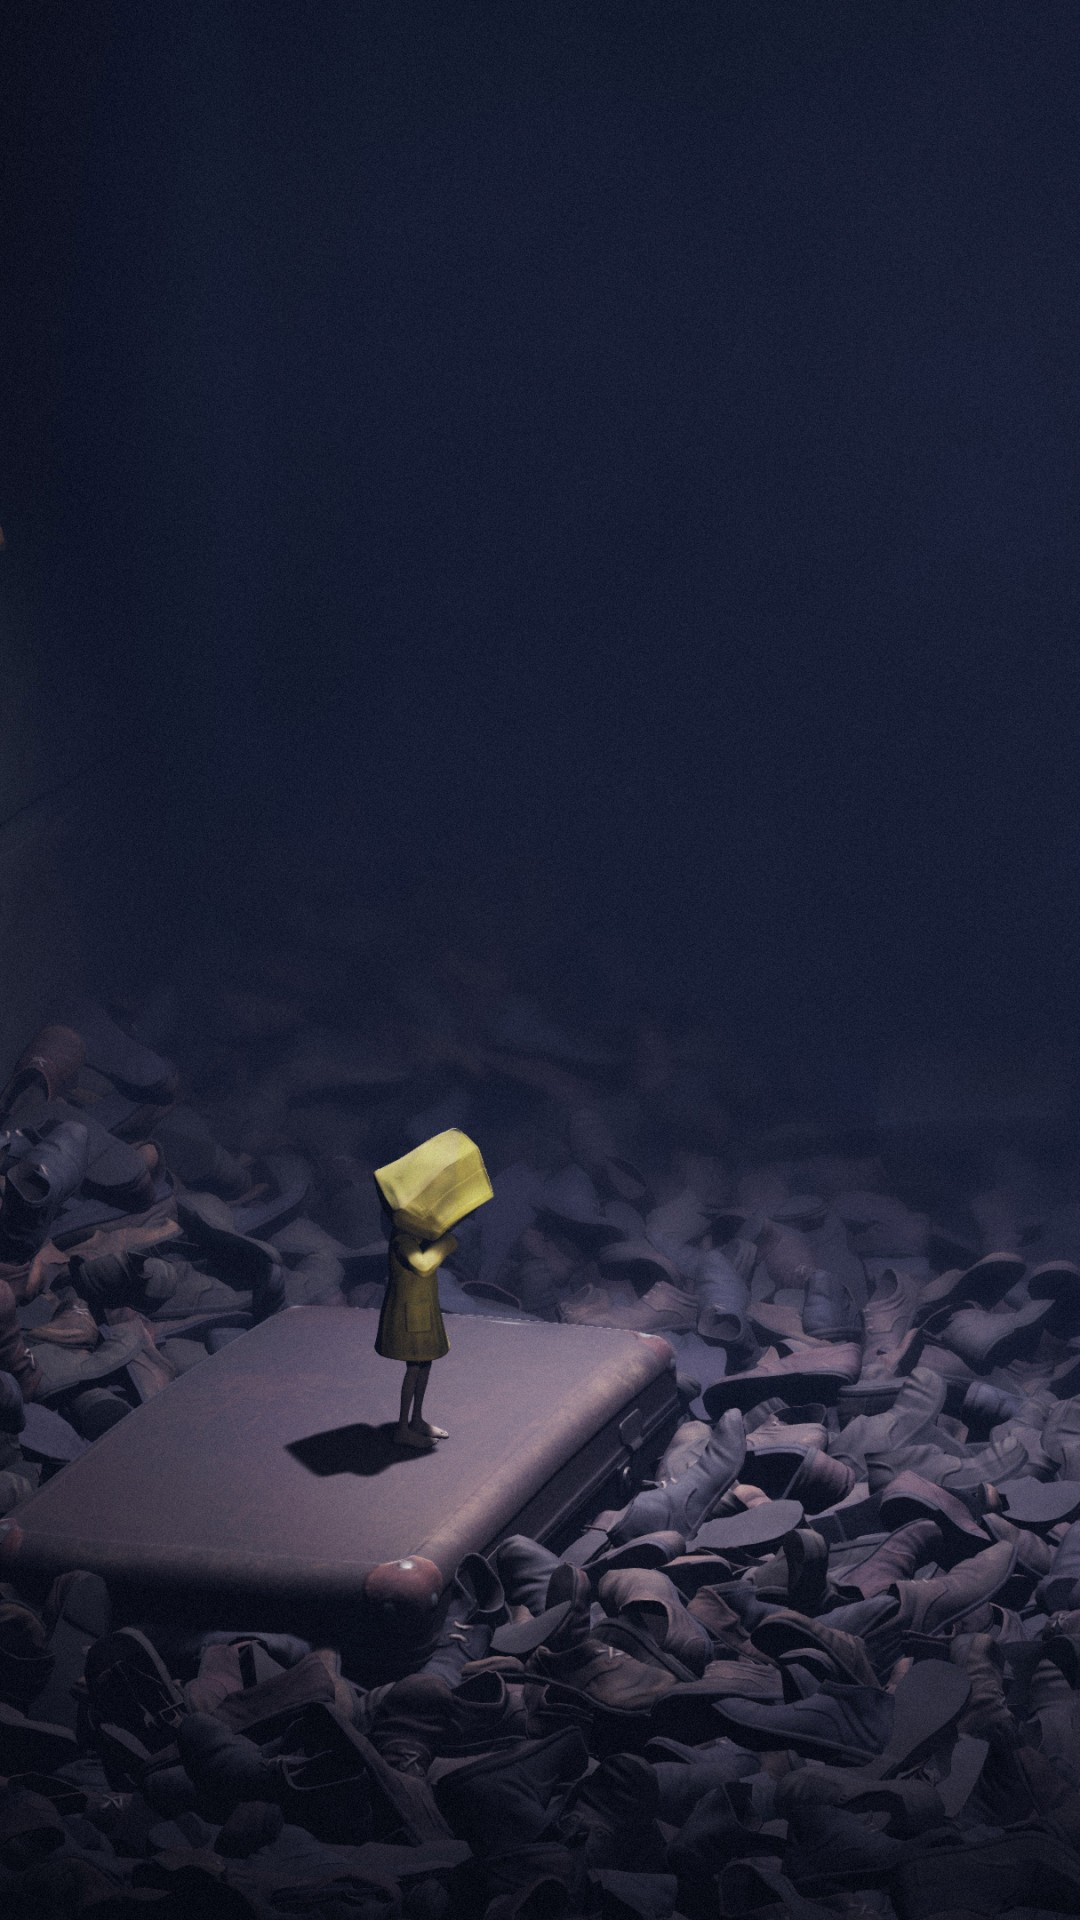 Wallpaper Little Nightmares Pc Xbox One Ps4 Games 11709 Page 94